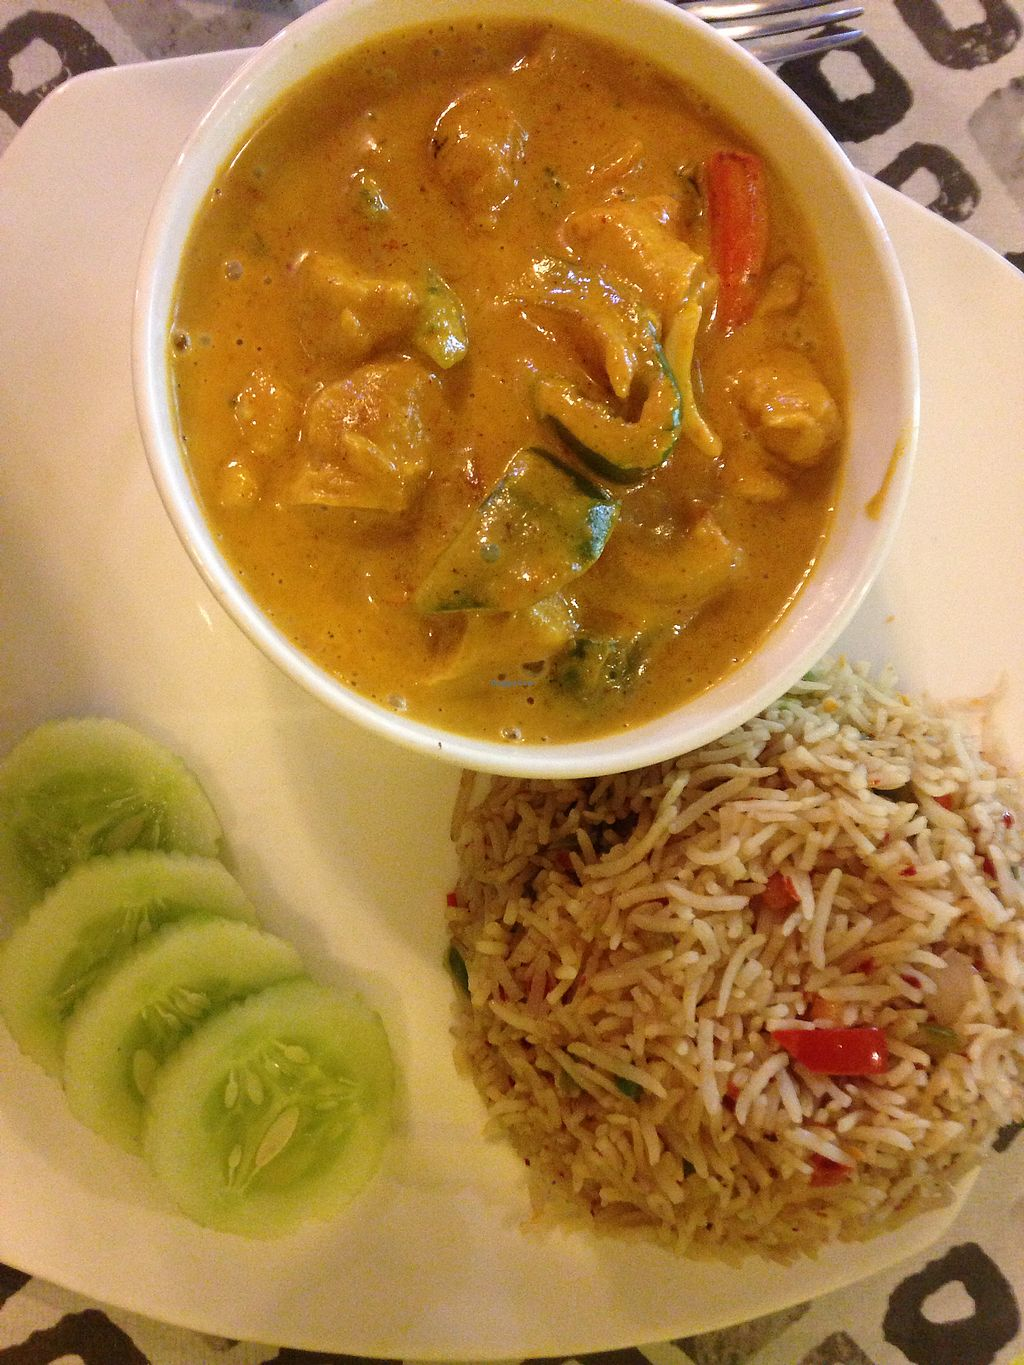 "Photo of Ashvita Nirvana  by <a href=""/members/profile/SophieCarolyn"">SophieCarolyn</a> <br/>Yellow curry with fried rice <br/> April 4, 2018  - <a href='/contact/abuse/image/92013/380663'>Report</a>"